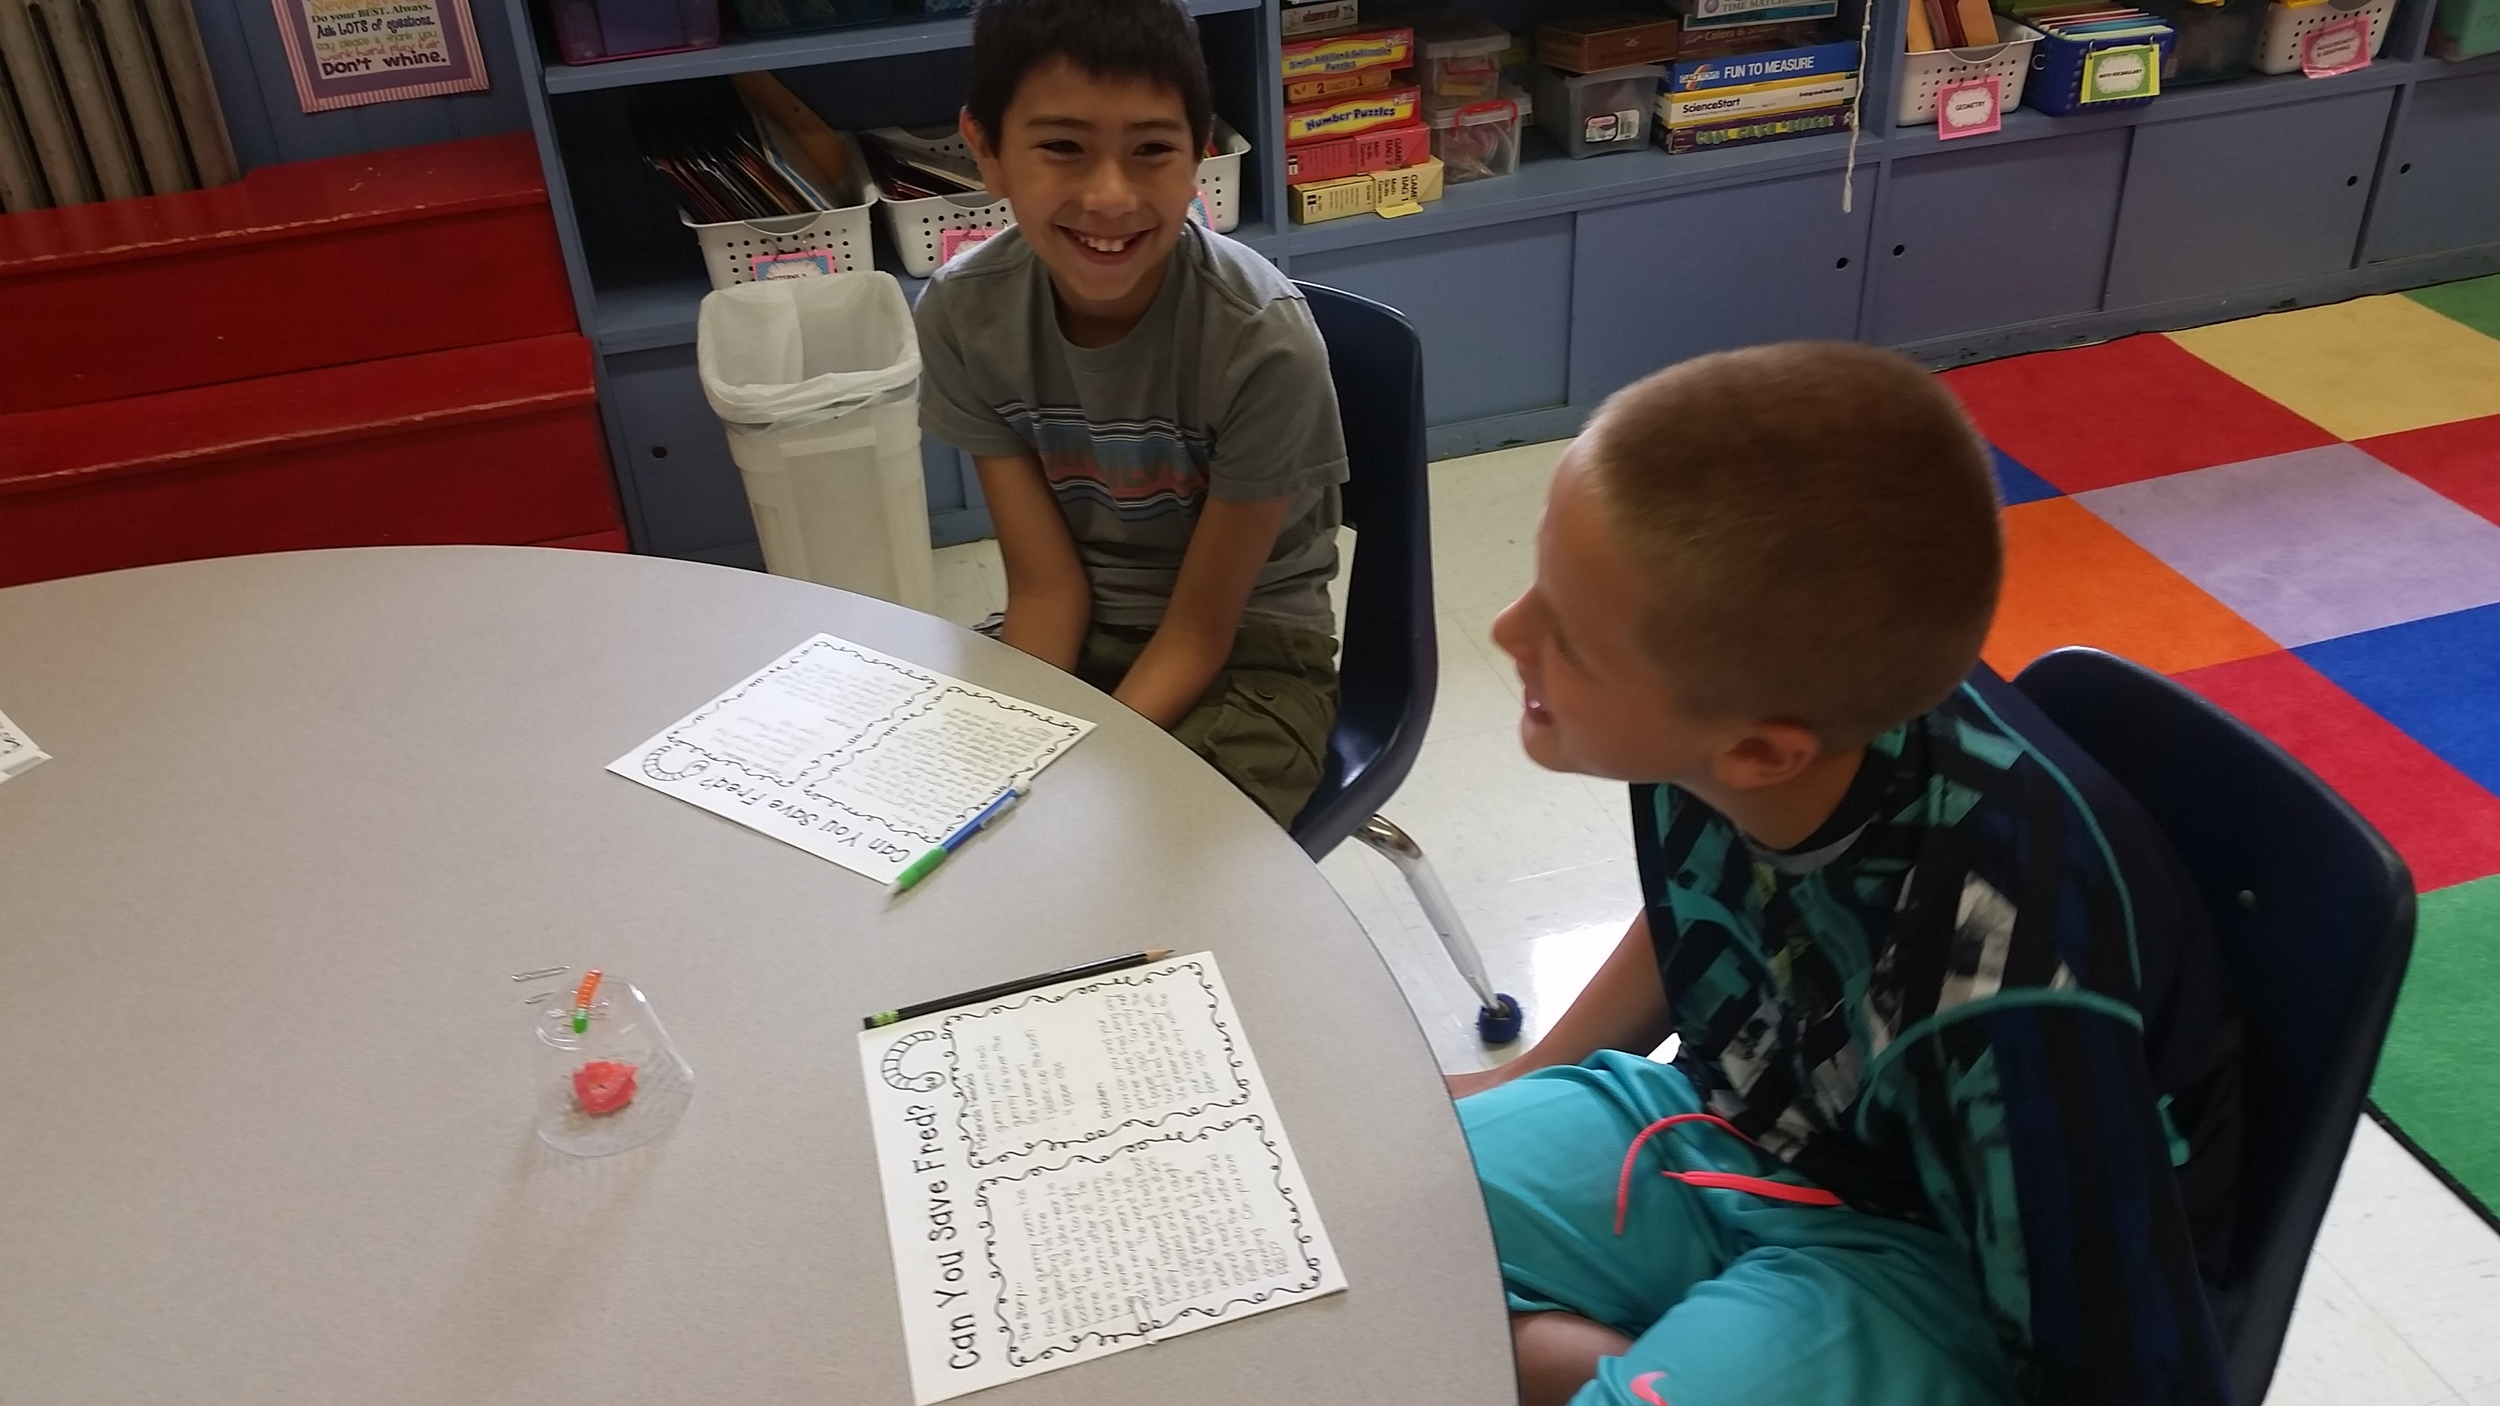 Students work together to save Fred from drowning.